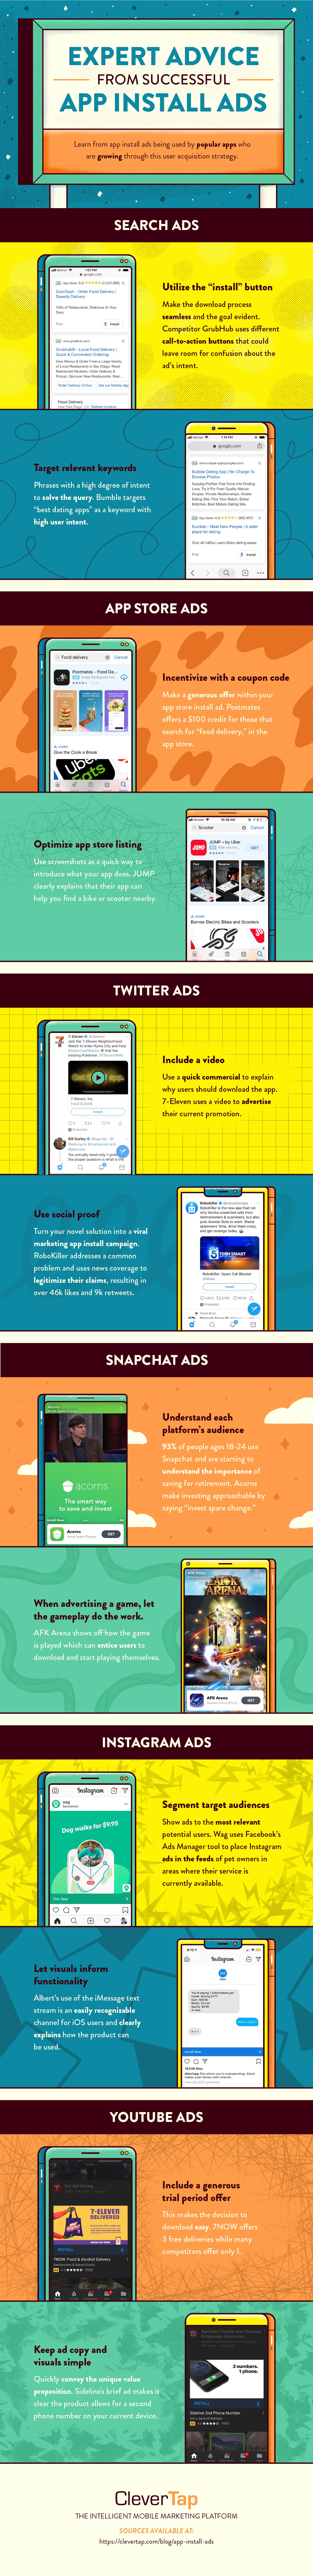 app install ads infographic